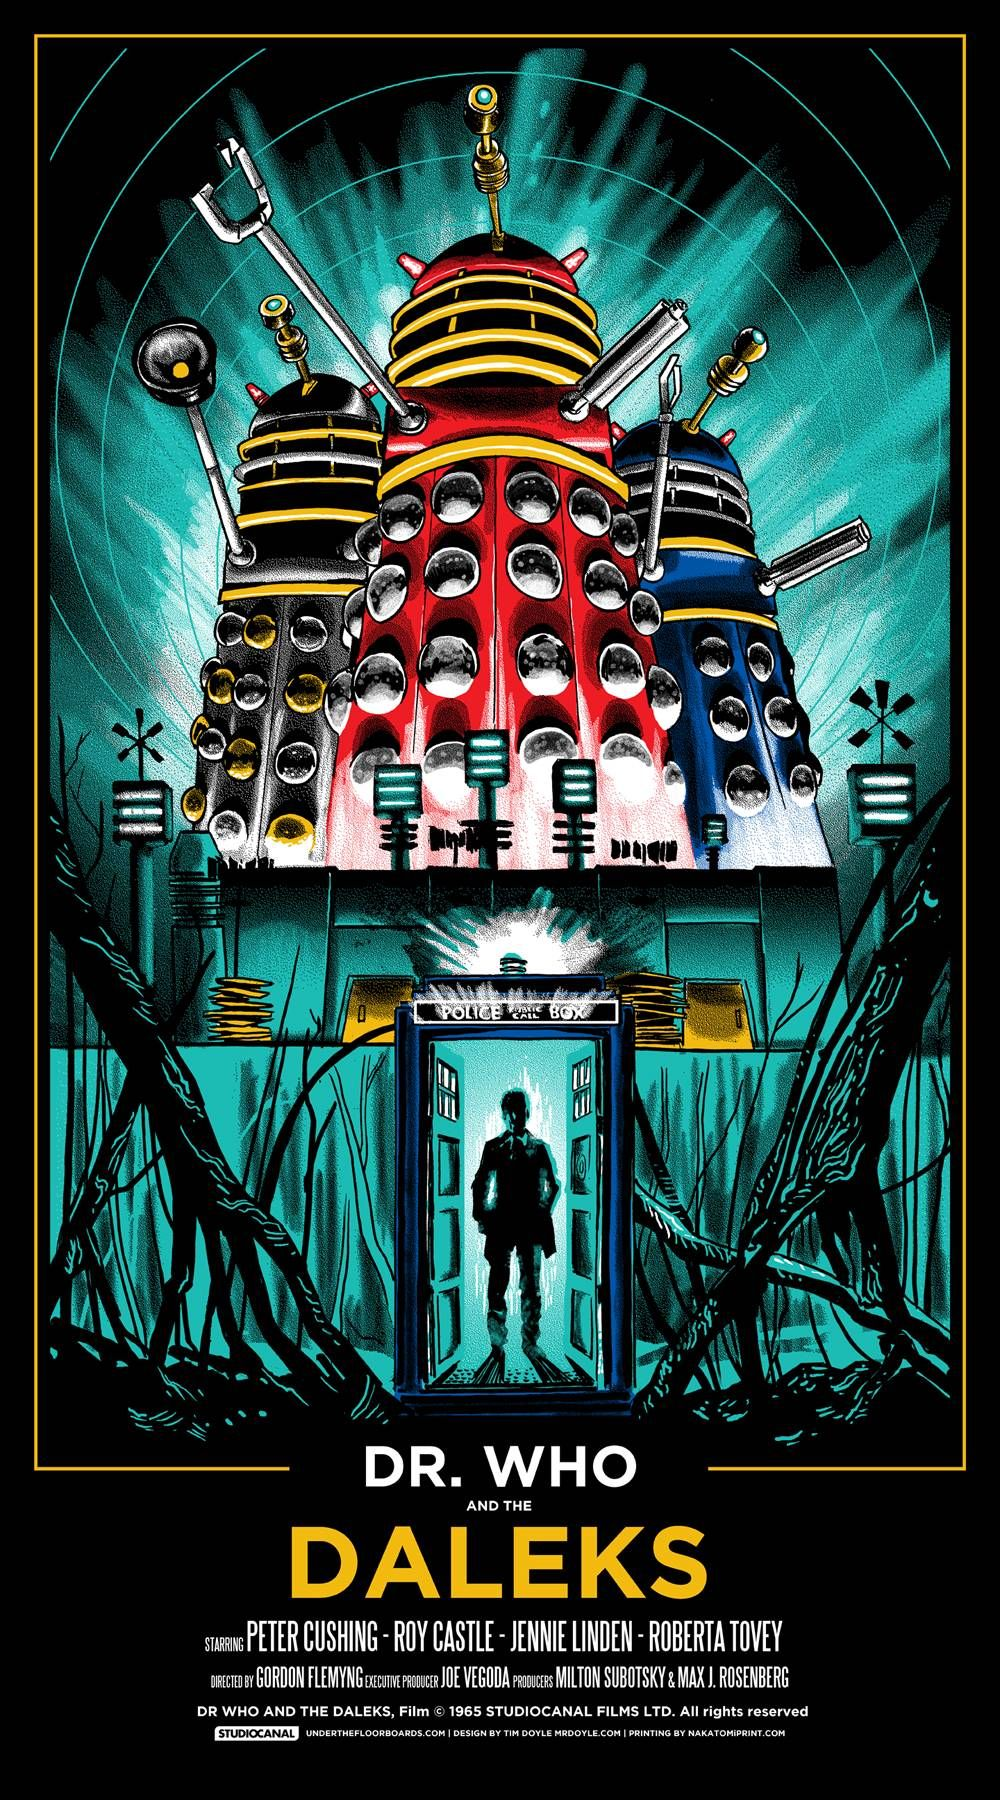 Dr Who and the Daleks #DoctorWho